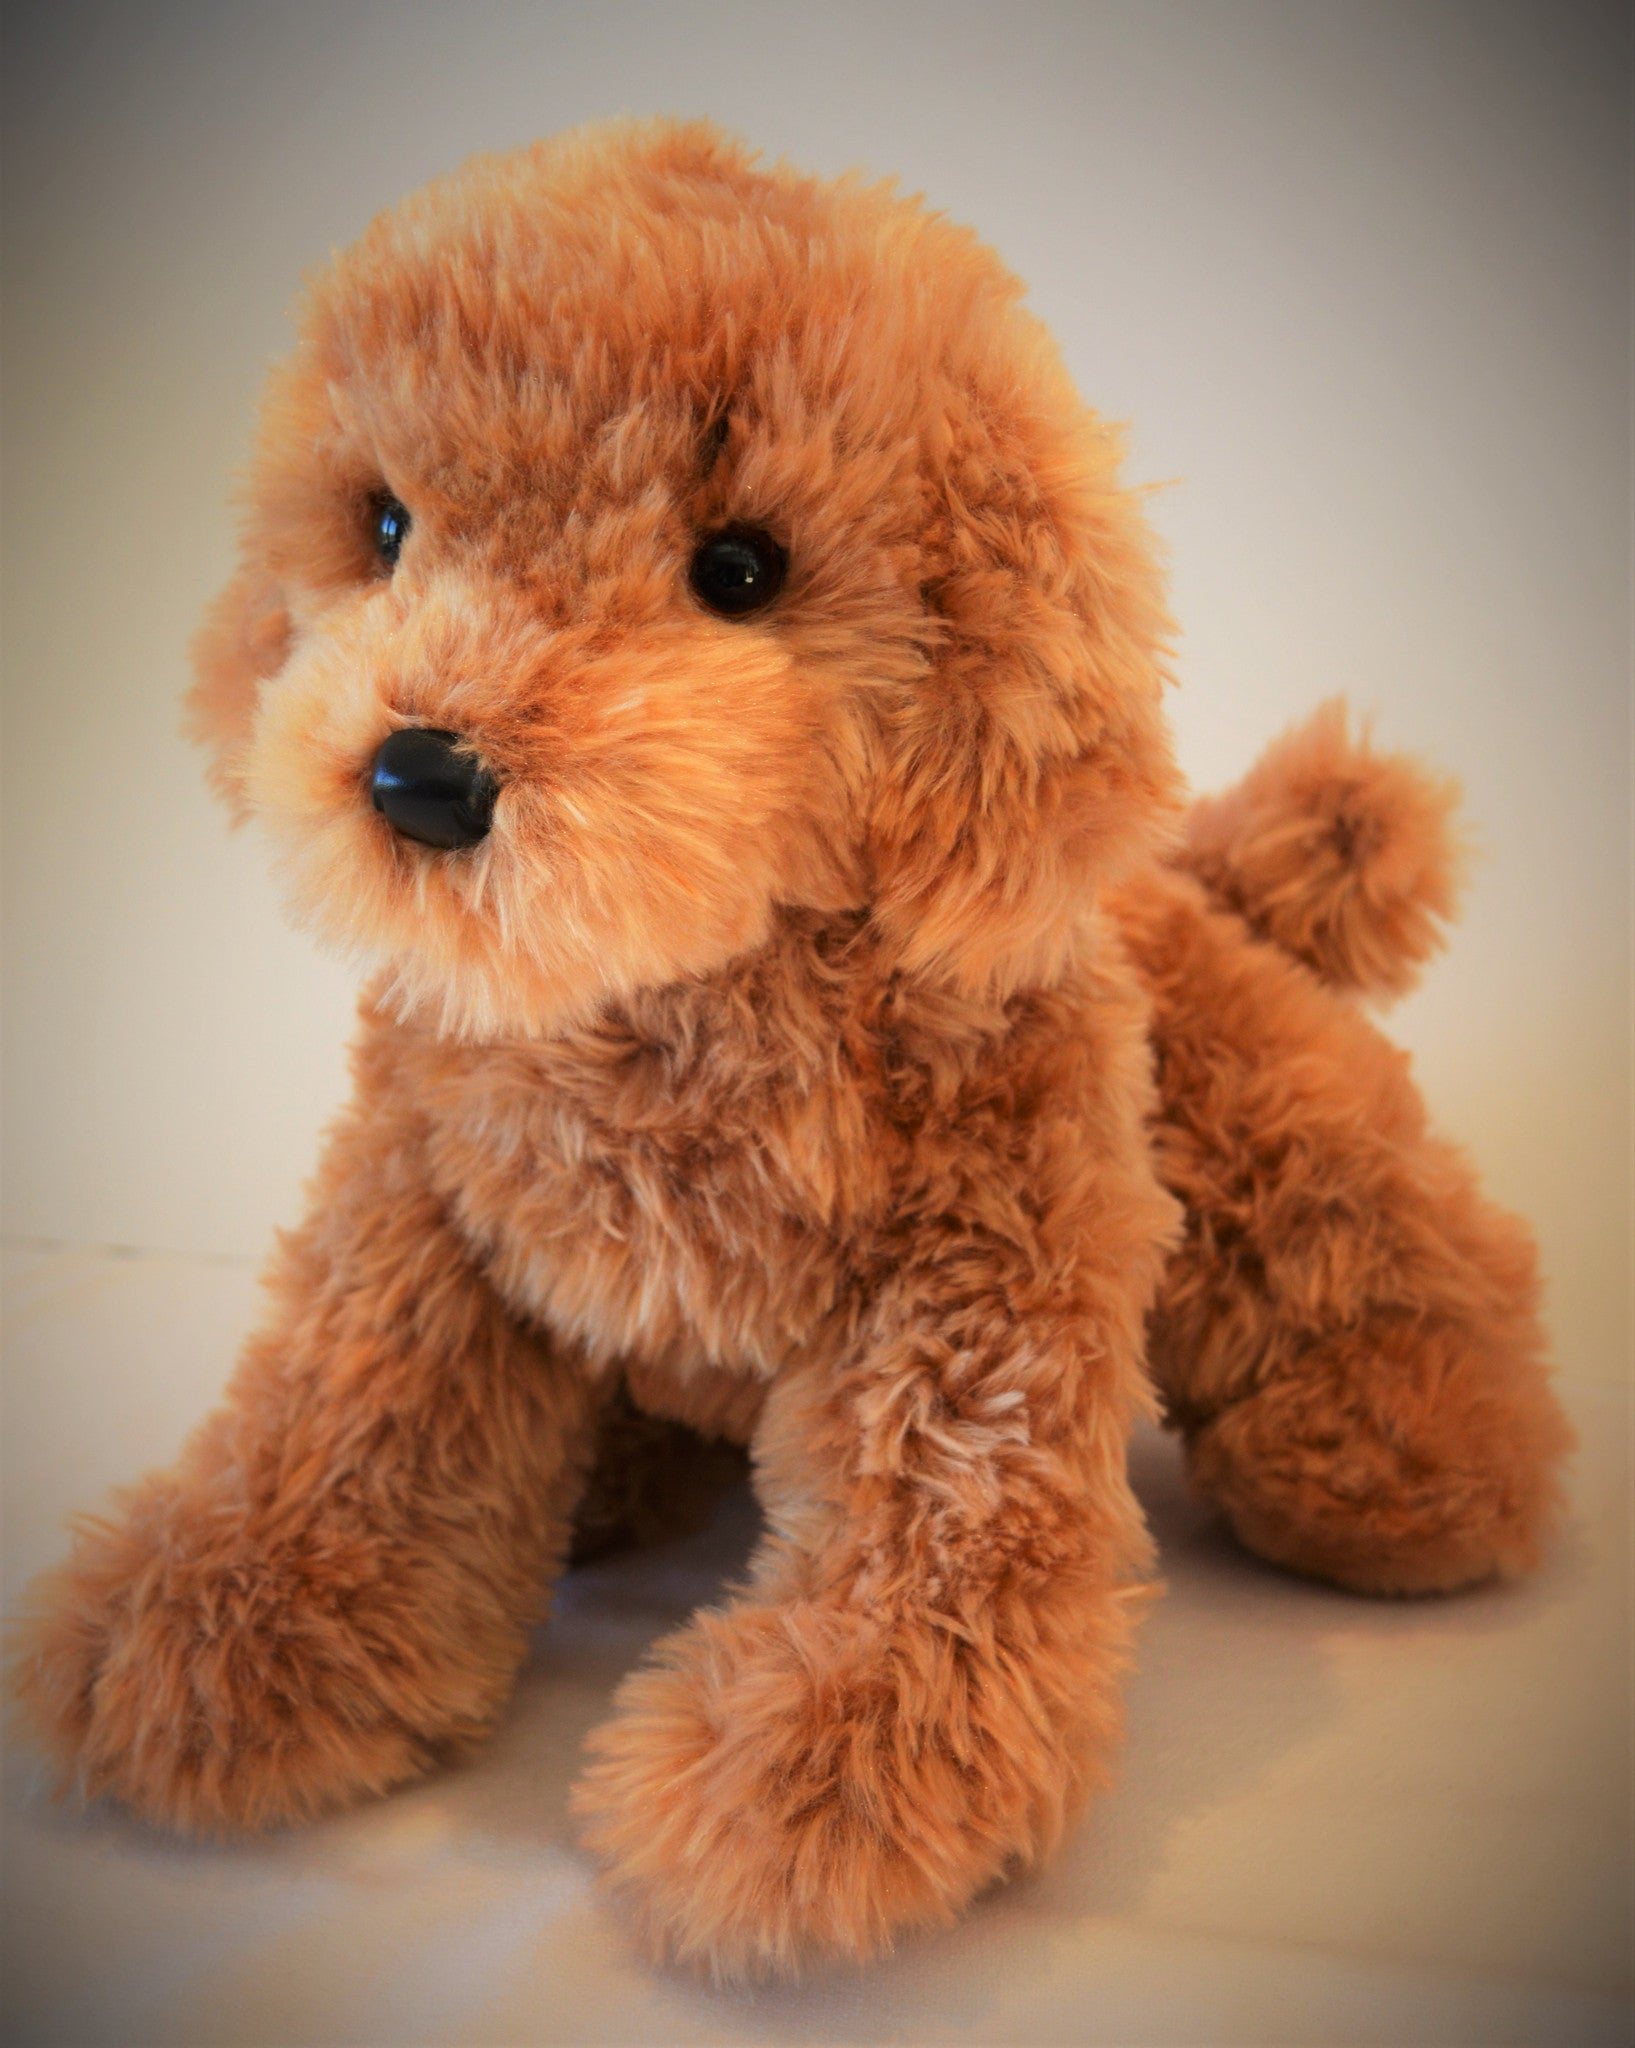 Goldendoodle Dog Stuffed Toy For Seniors And People With